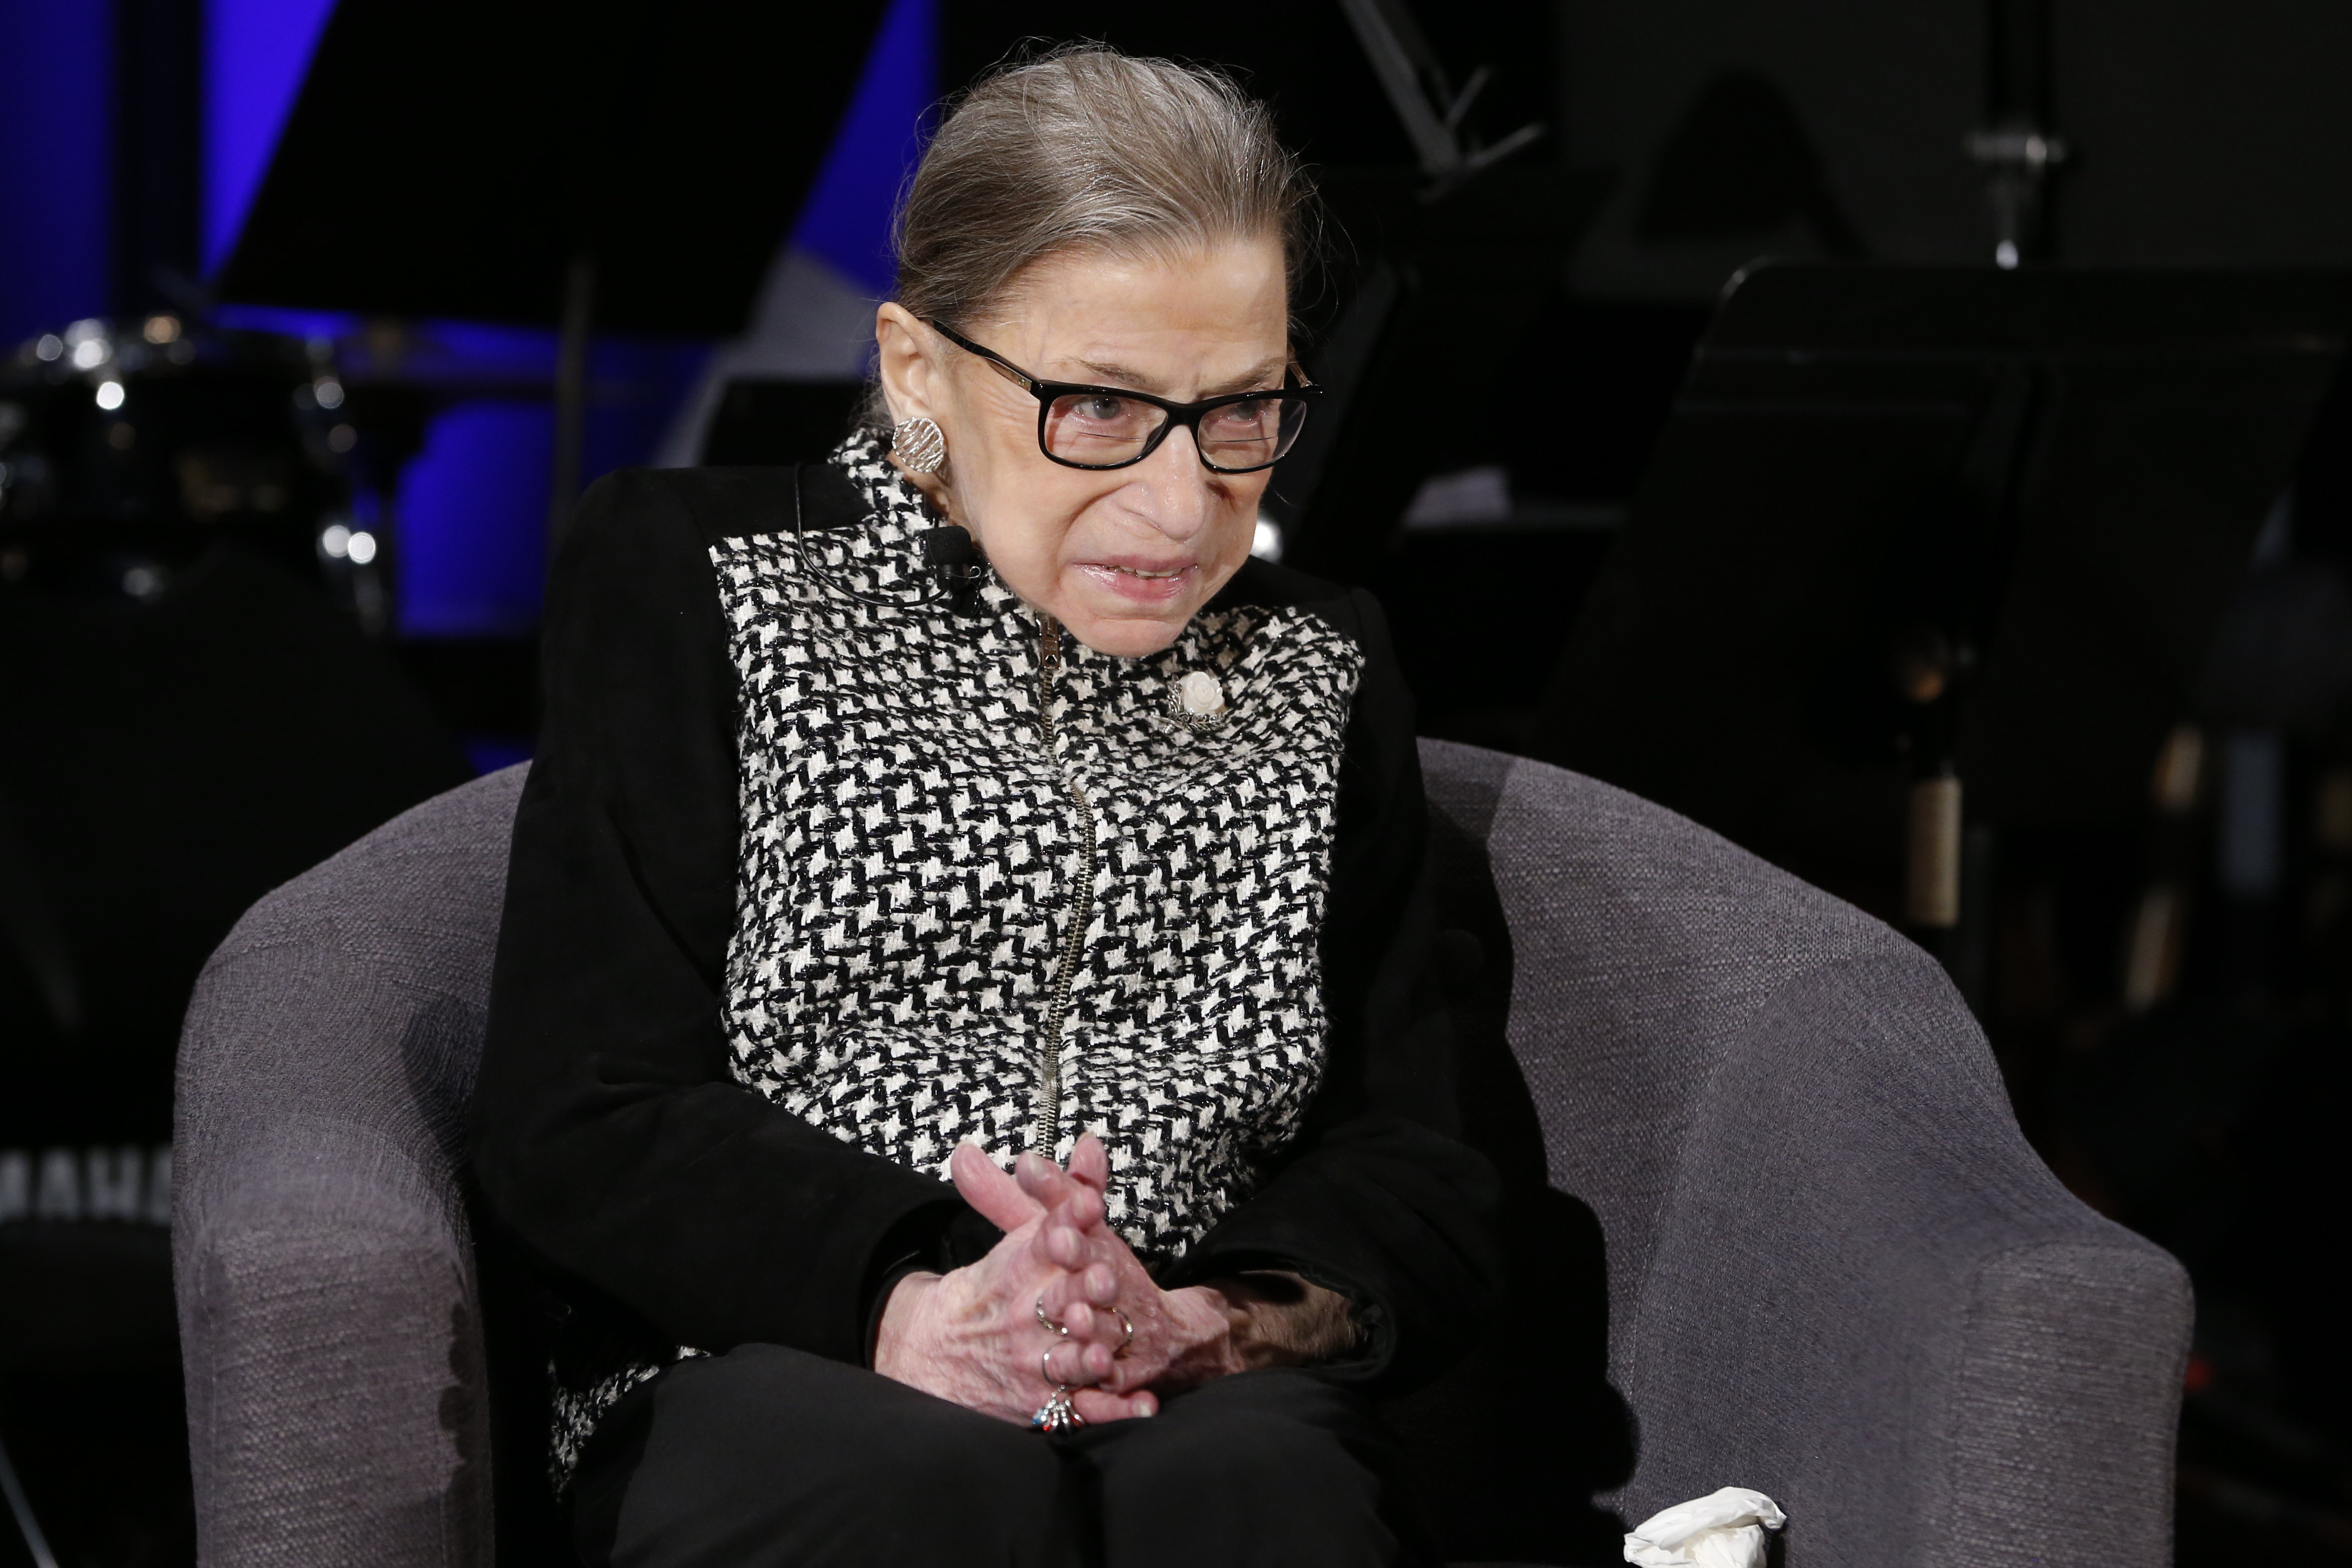 Supreme Court Justice Ruth Bader Ginsburg speaks with author Jeffrey Rosen at the National Constitution Center Americas Town Hall at the National Museum of Women in the Arts in Washington, on Dec. 17, 2019.